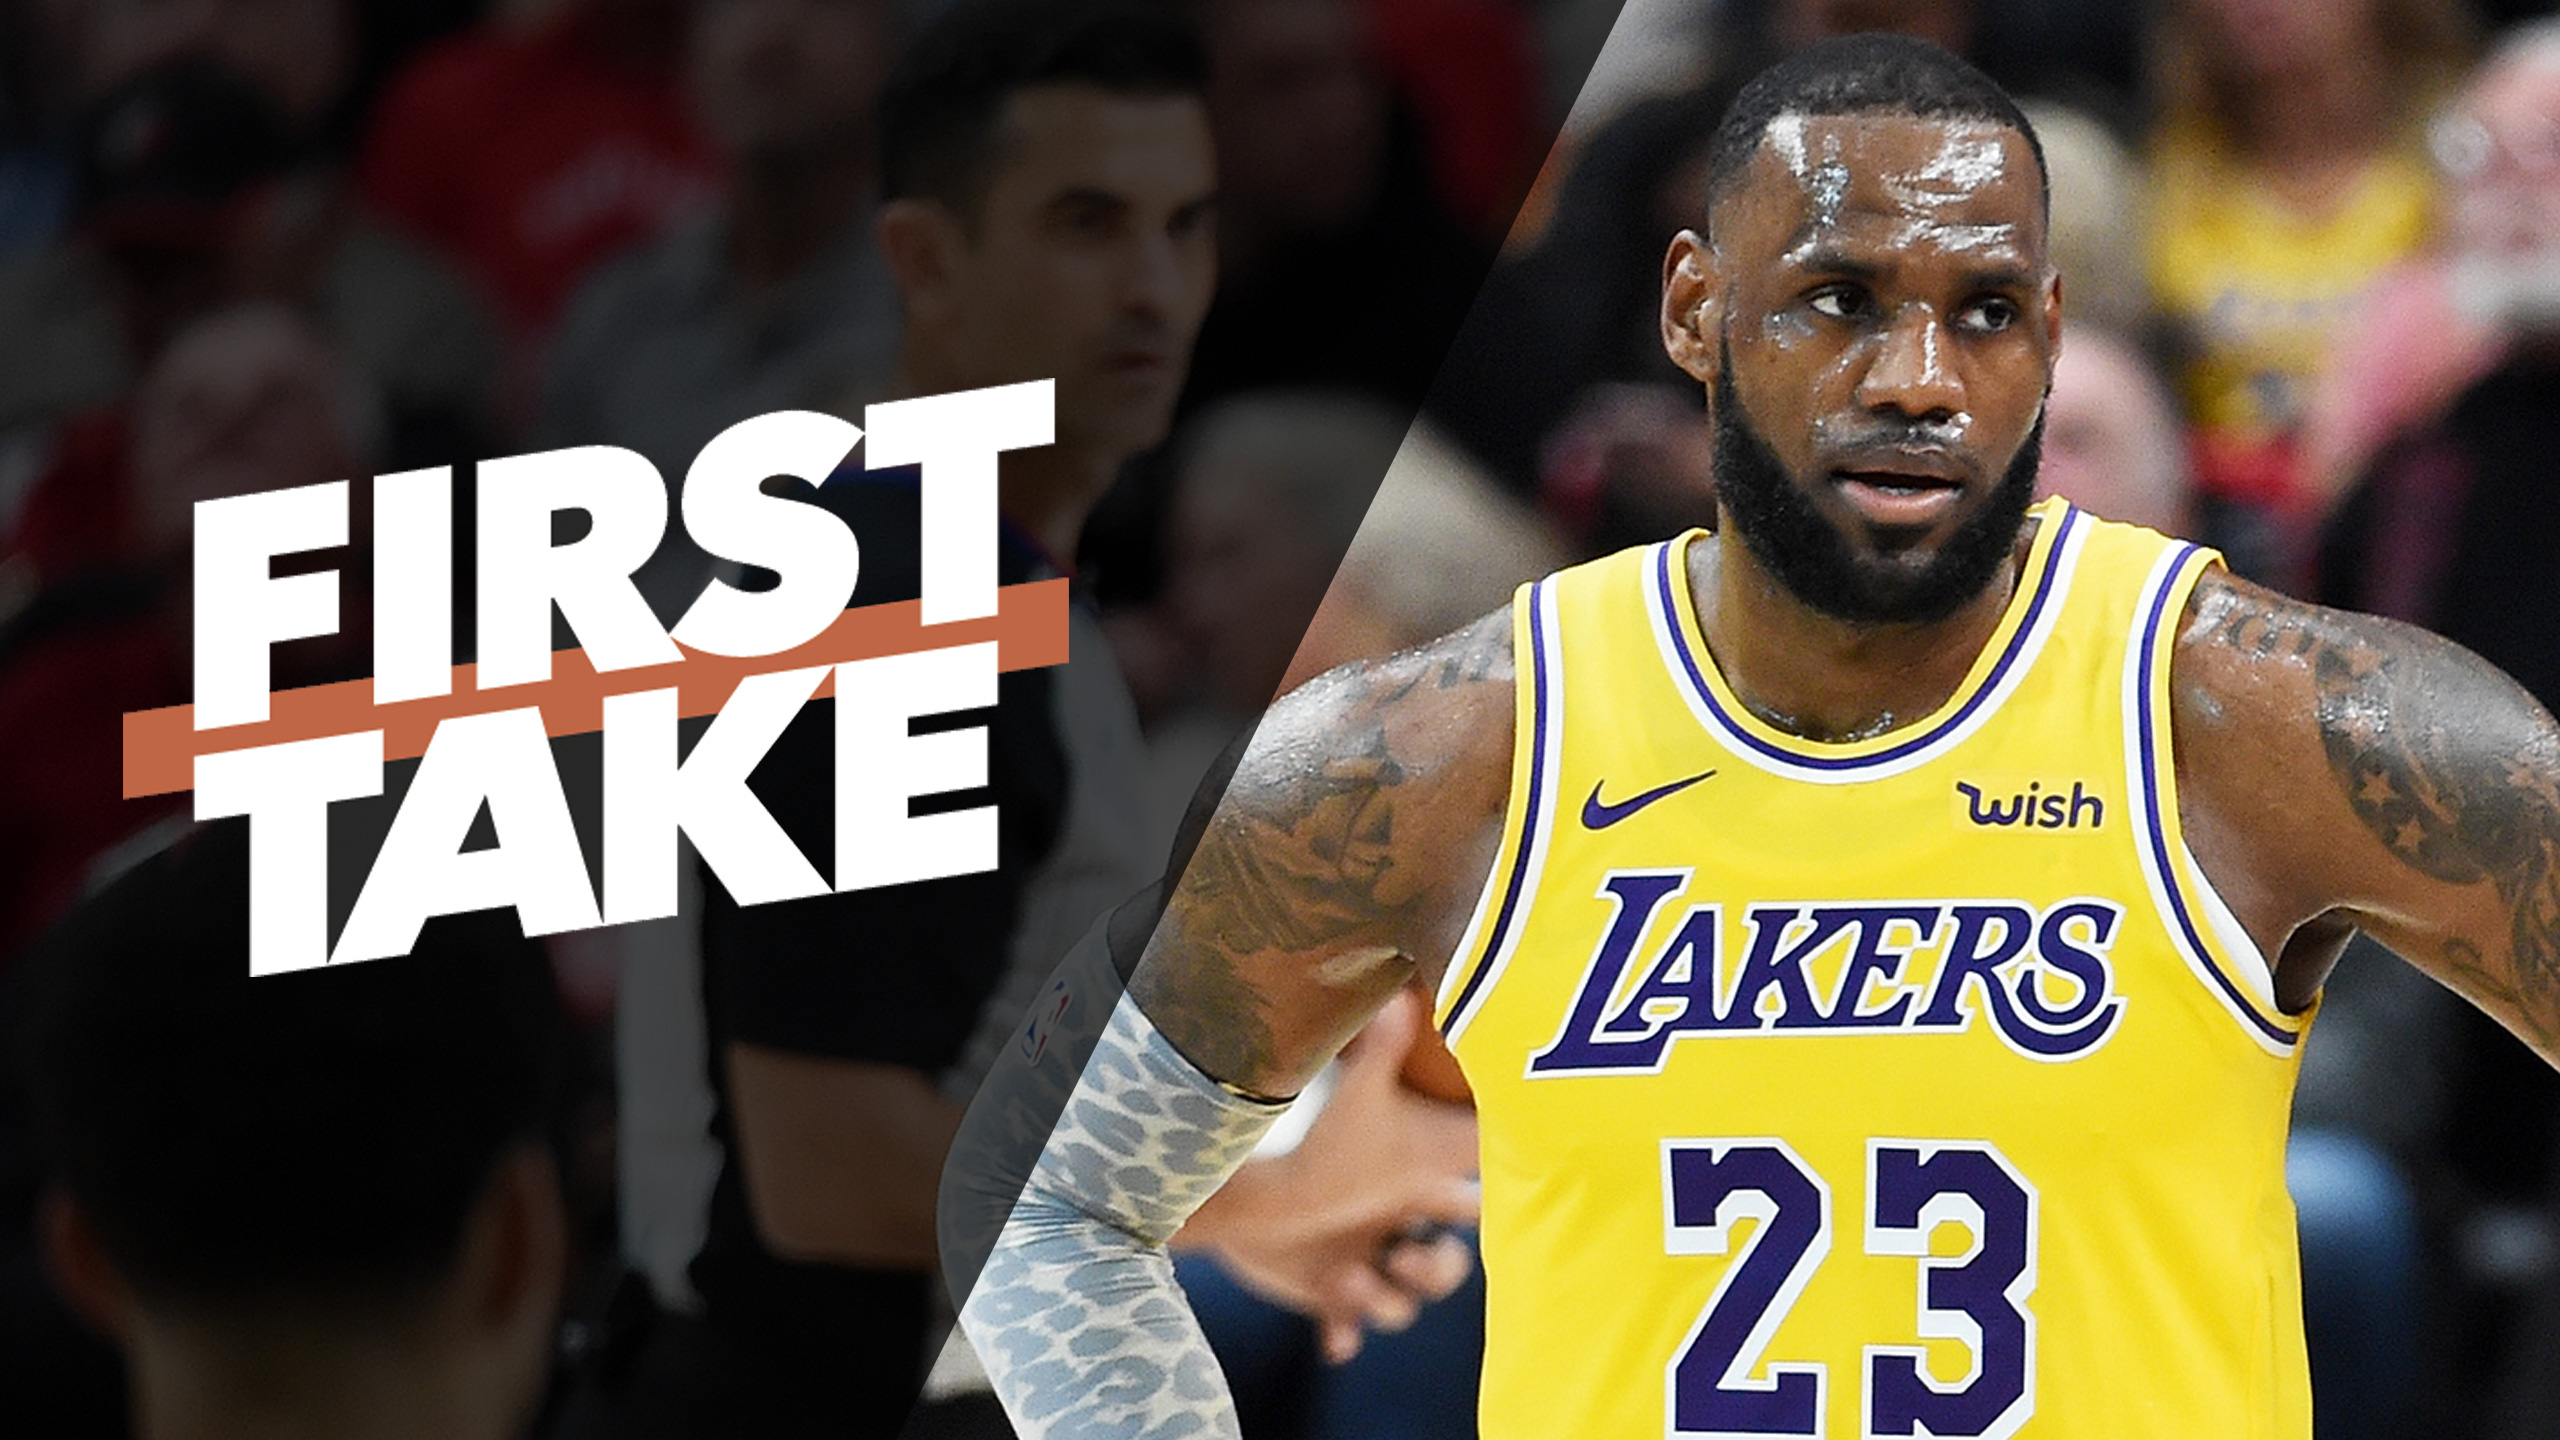 Fri, 10/19 - First Take